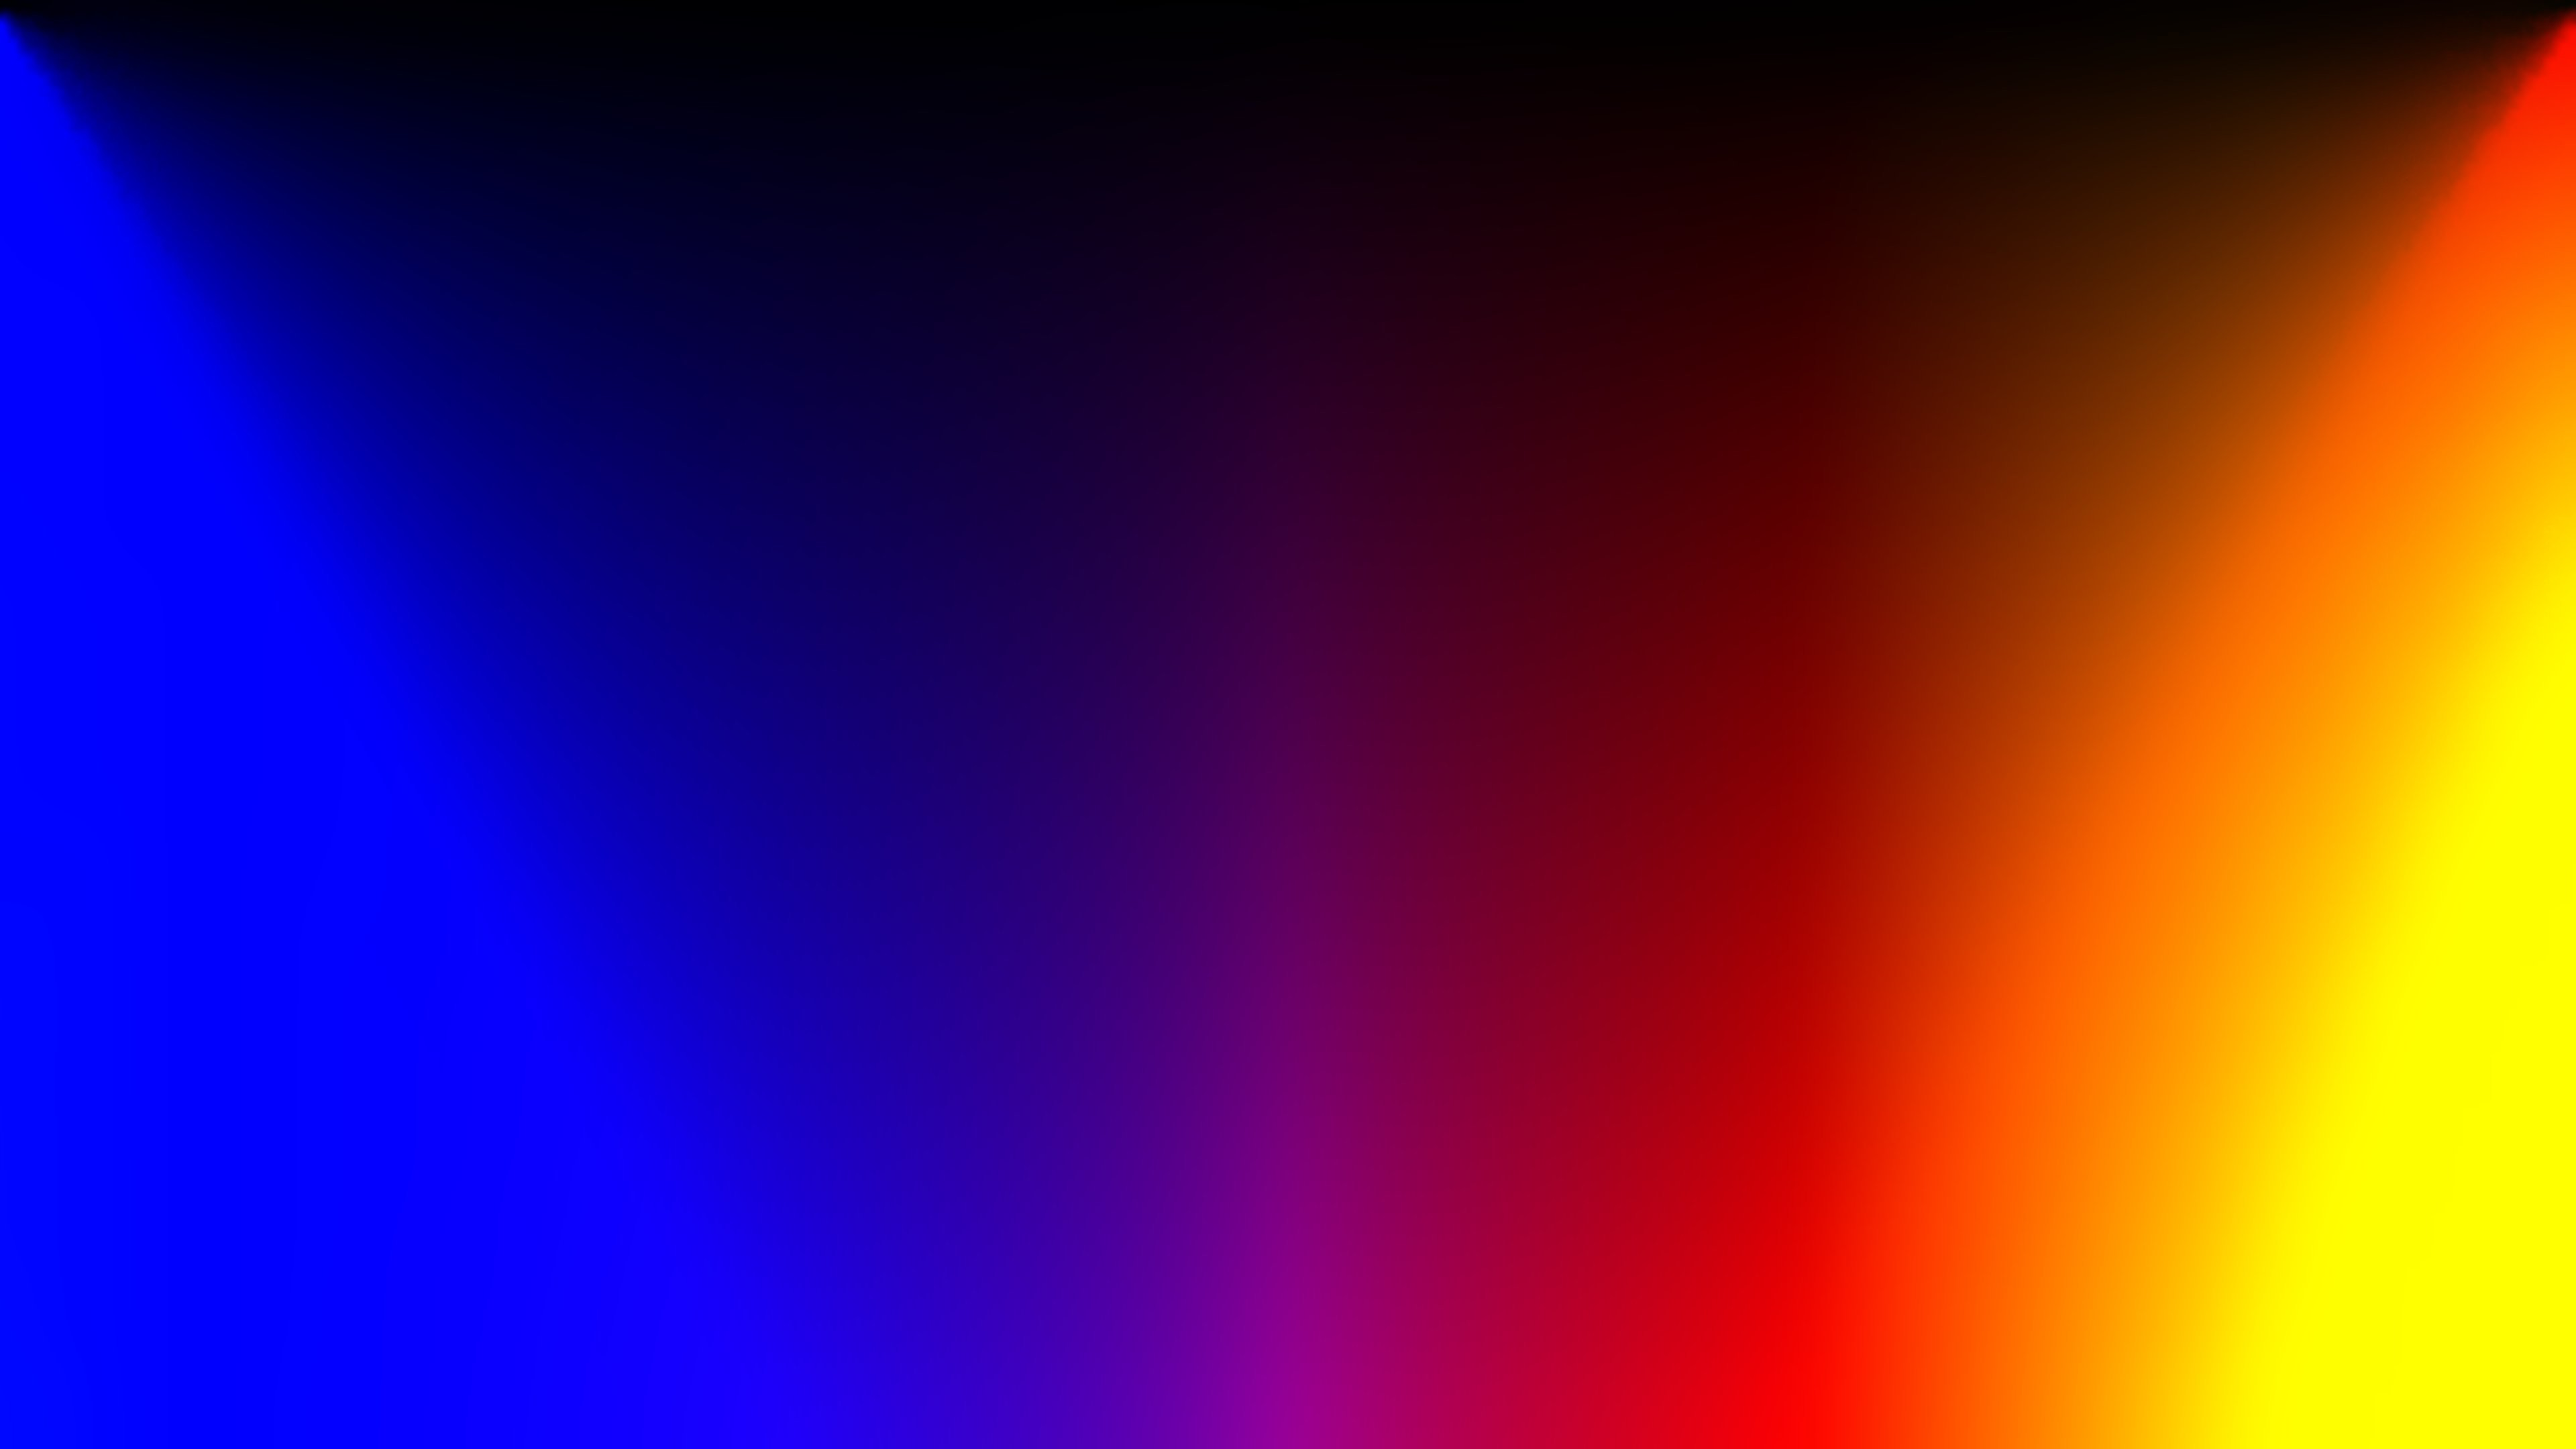 colors colorful abstract blue purple red orange yellow wallpaper